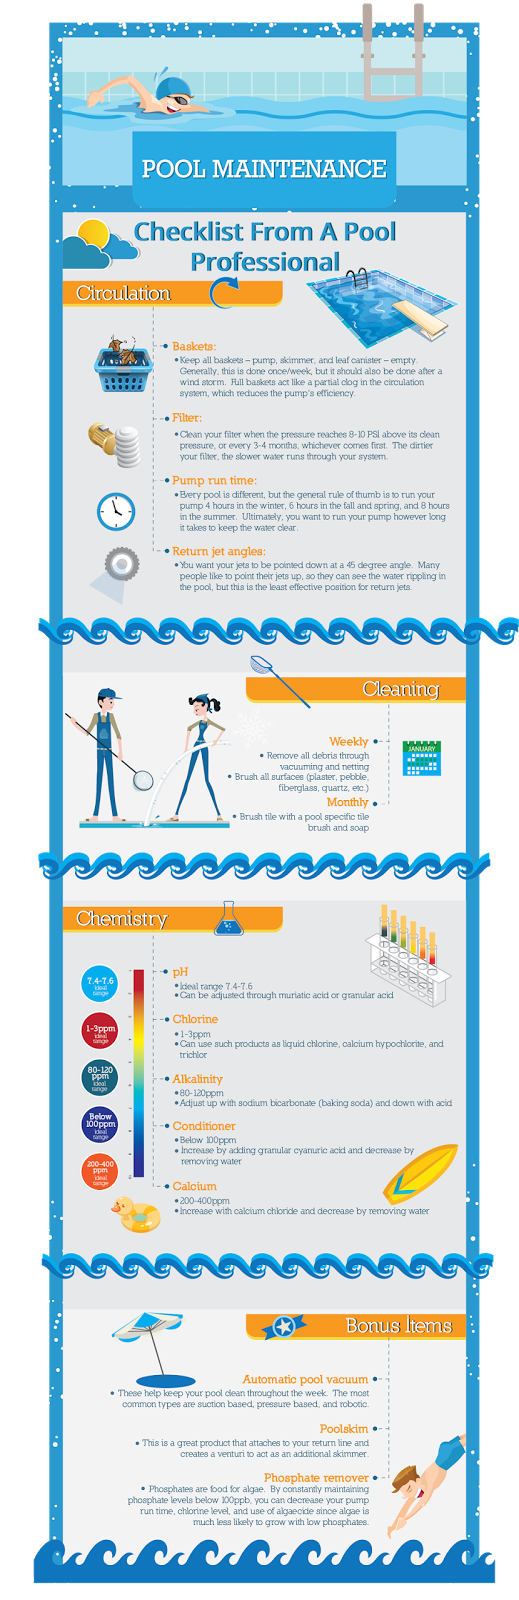 Pool Maintenance Check List Infographic